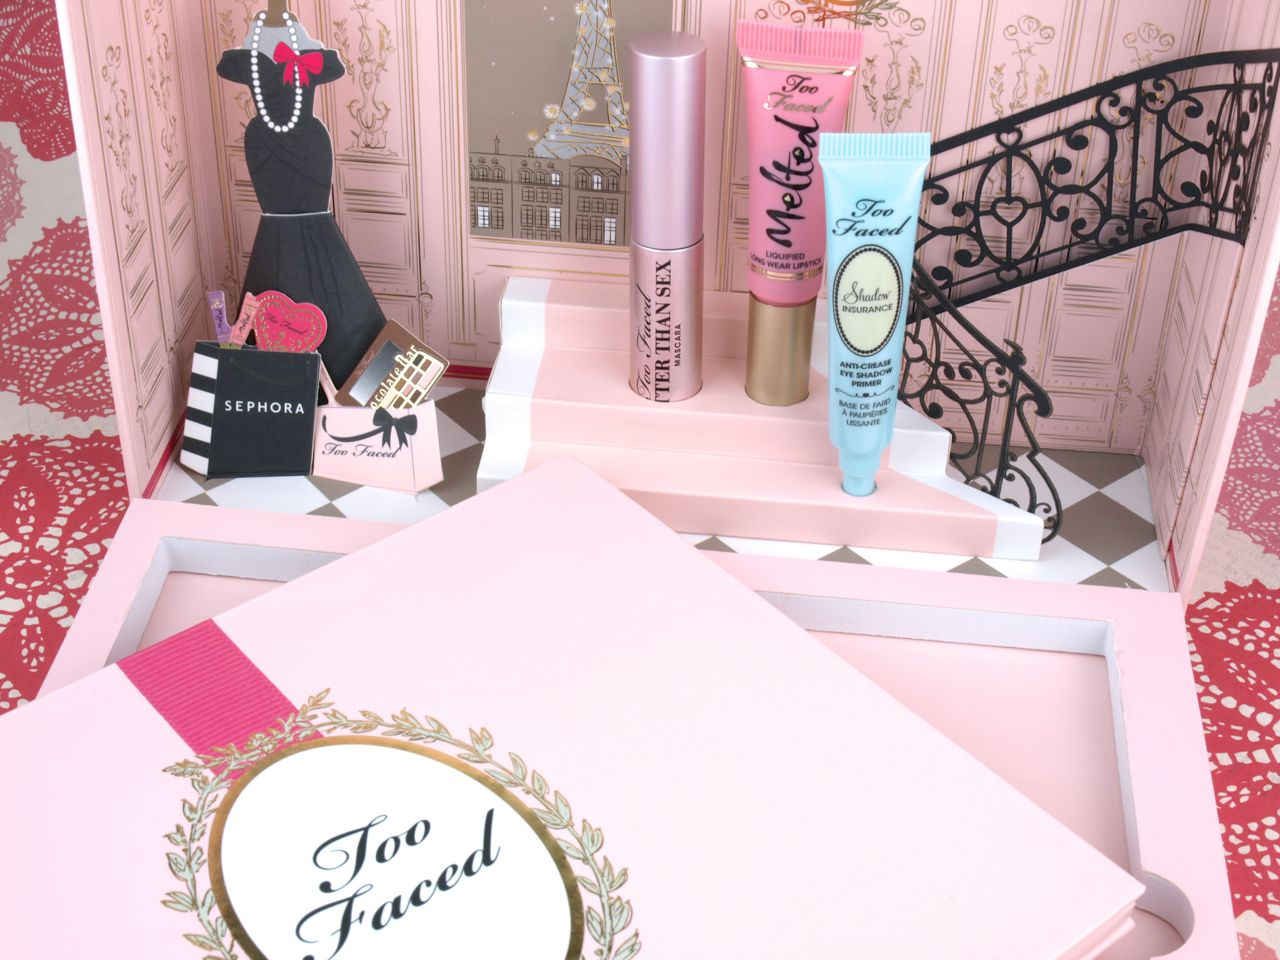 Too Faced Holiday 2015 Le Grand Palais Collection: Review and Swatches